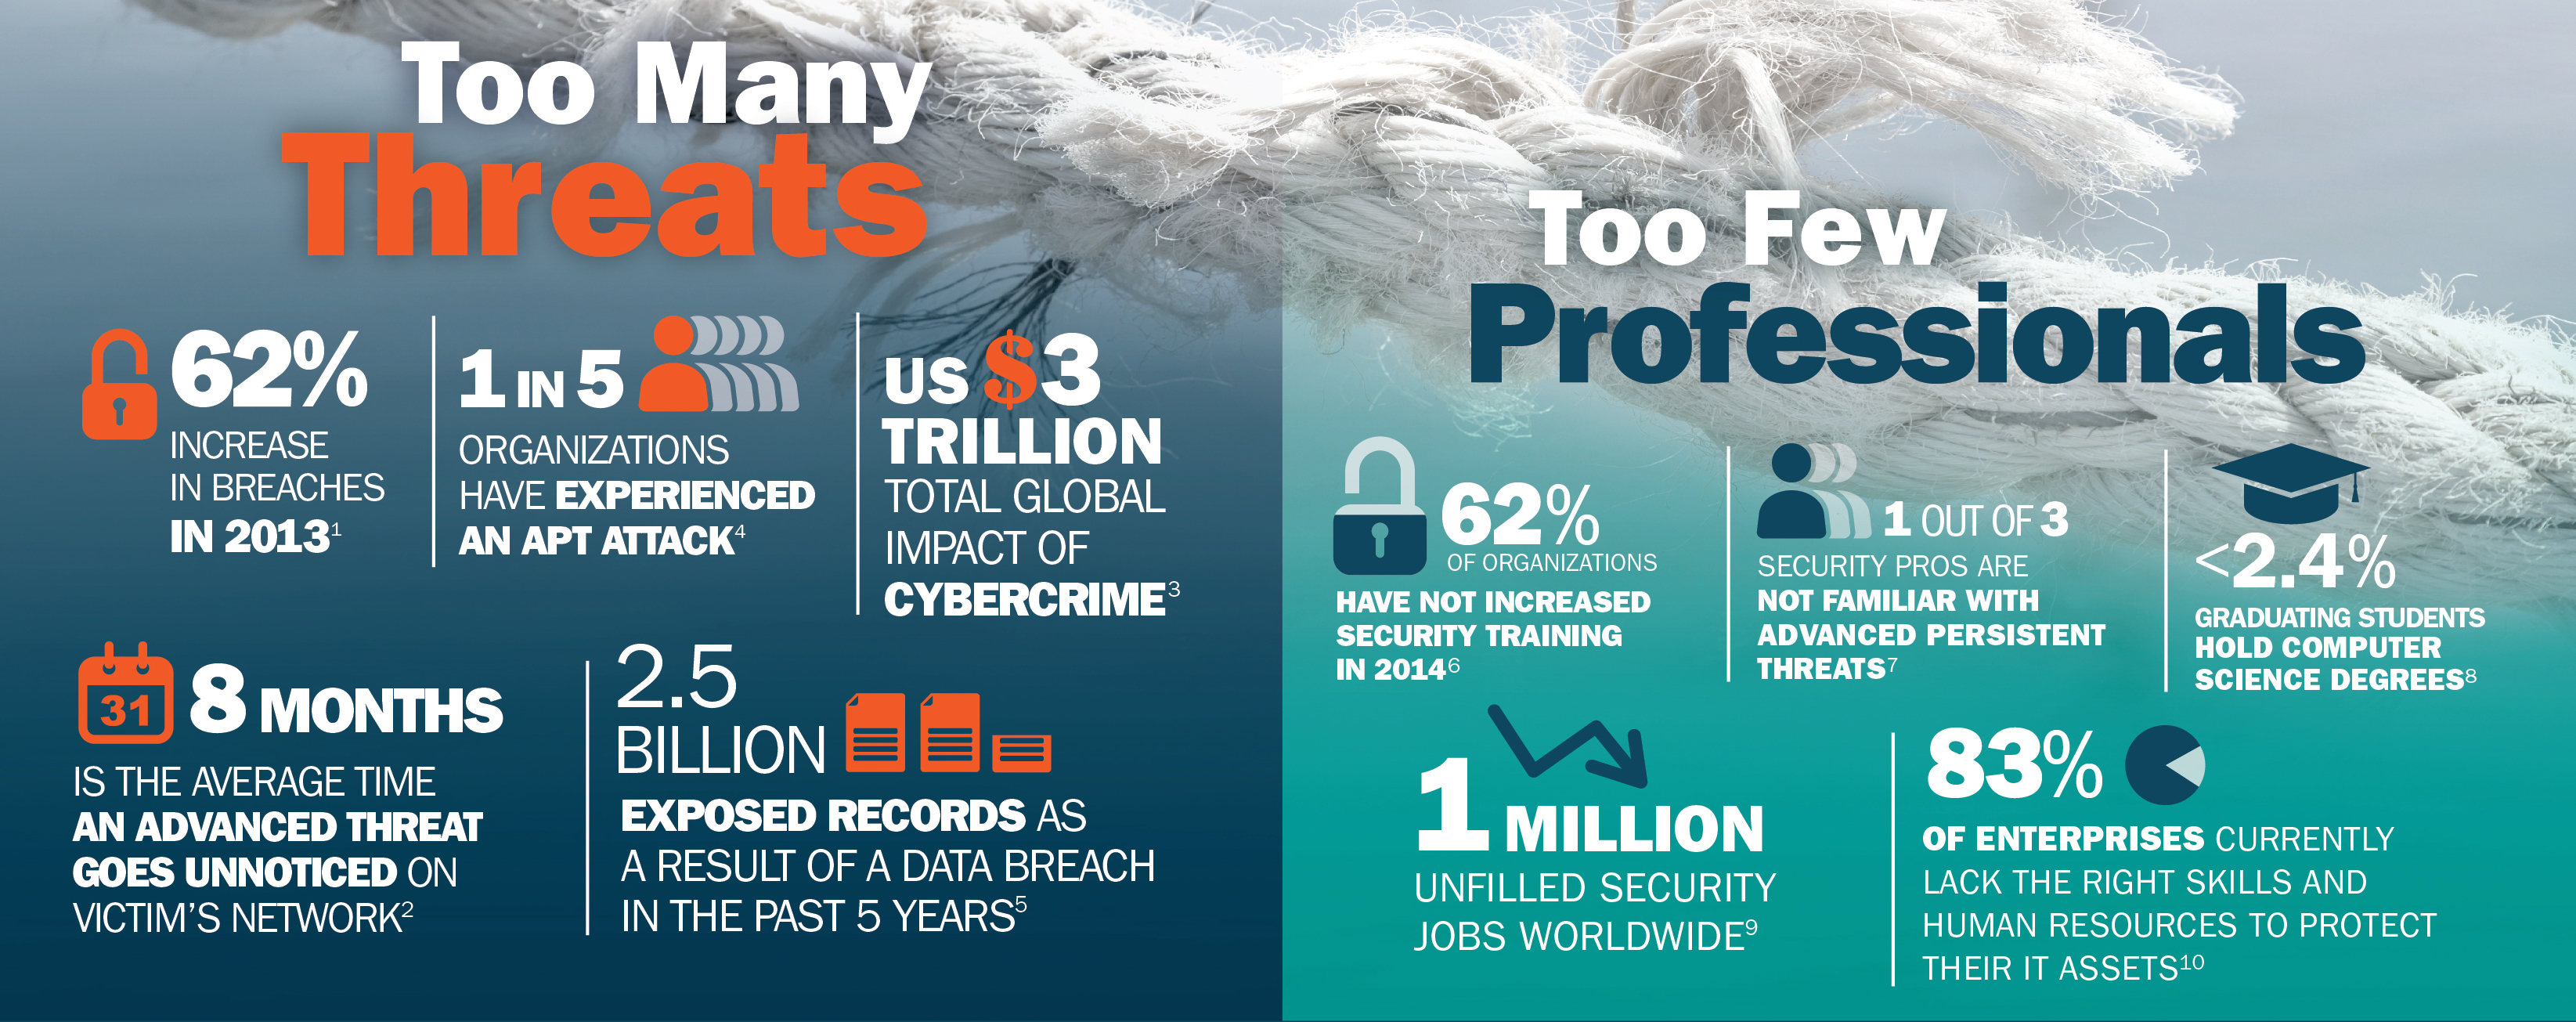 Excerpt from ISACA Infographic from their report on Cyber Skills Shortage